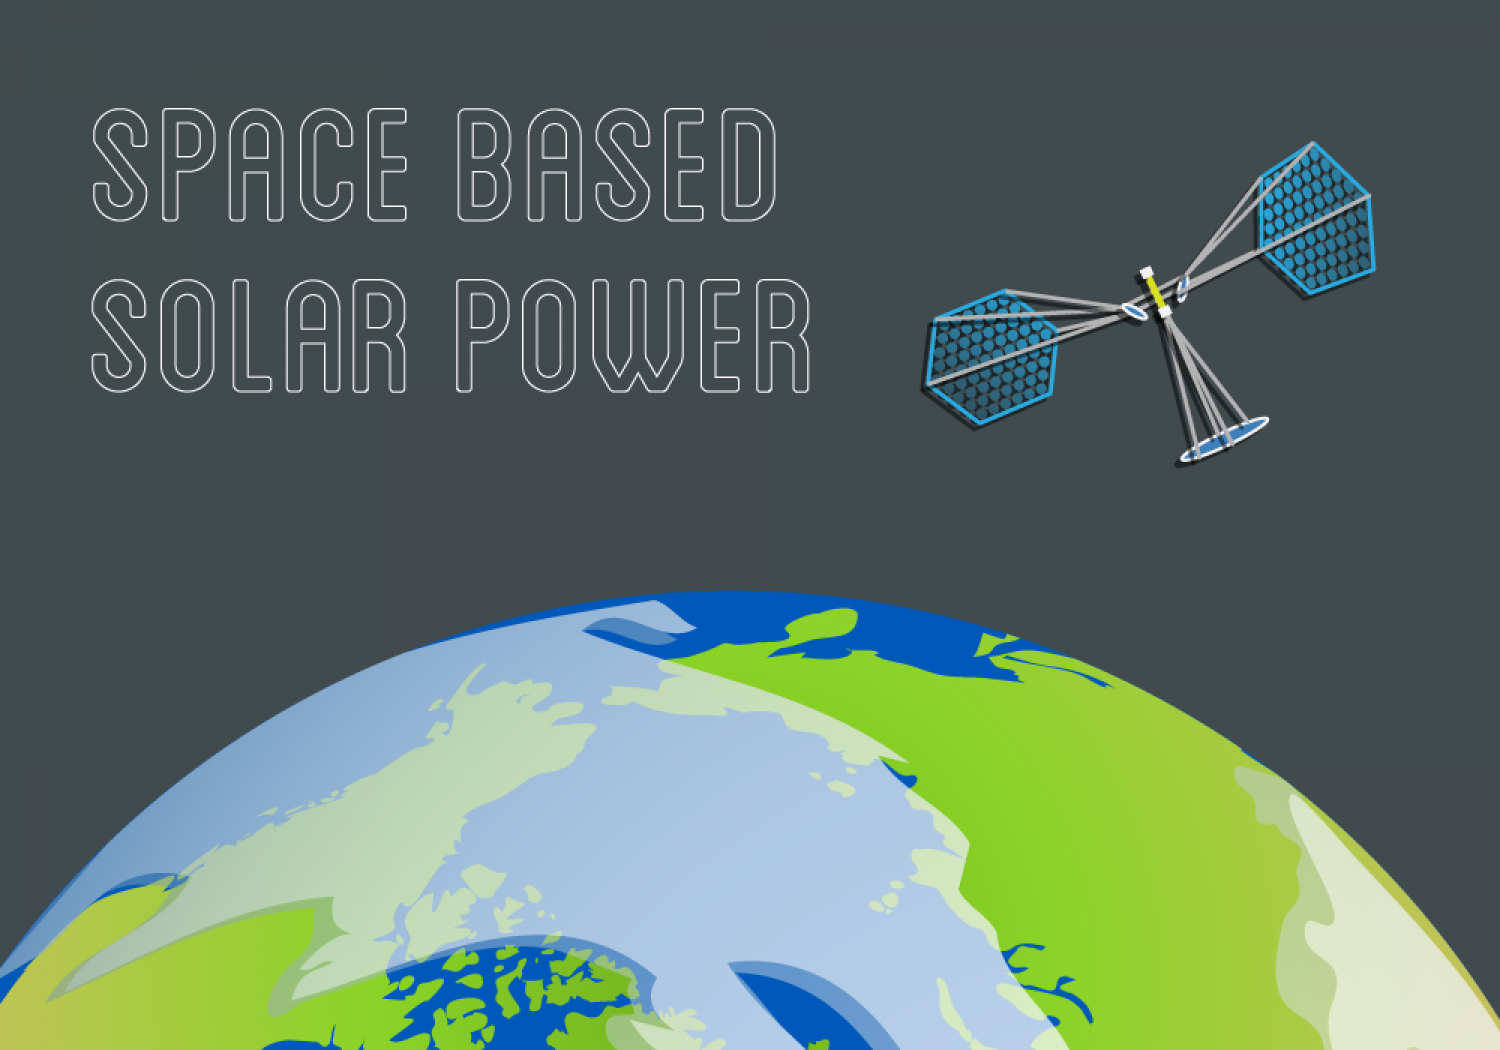 Space-Based Solar Power Infographic